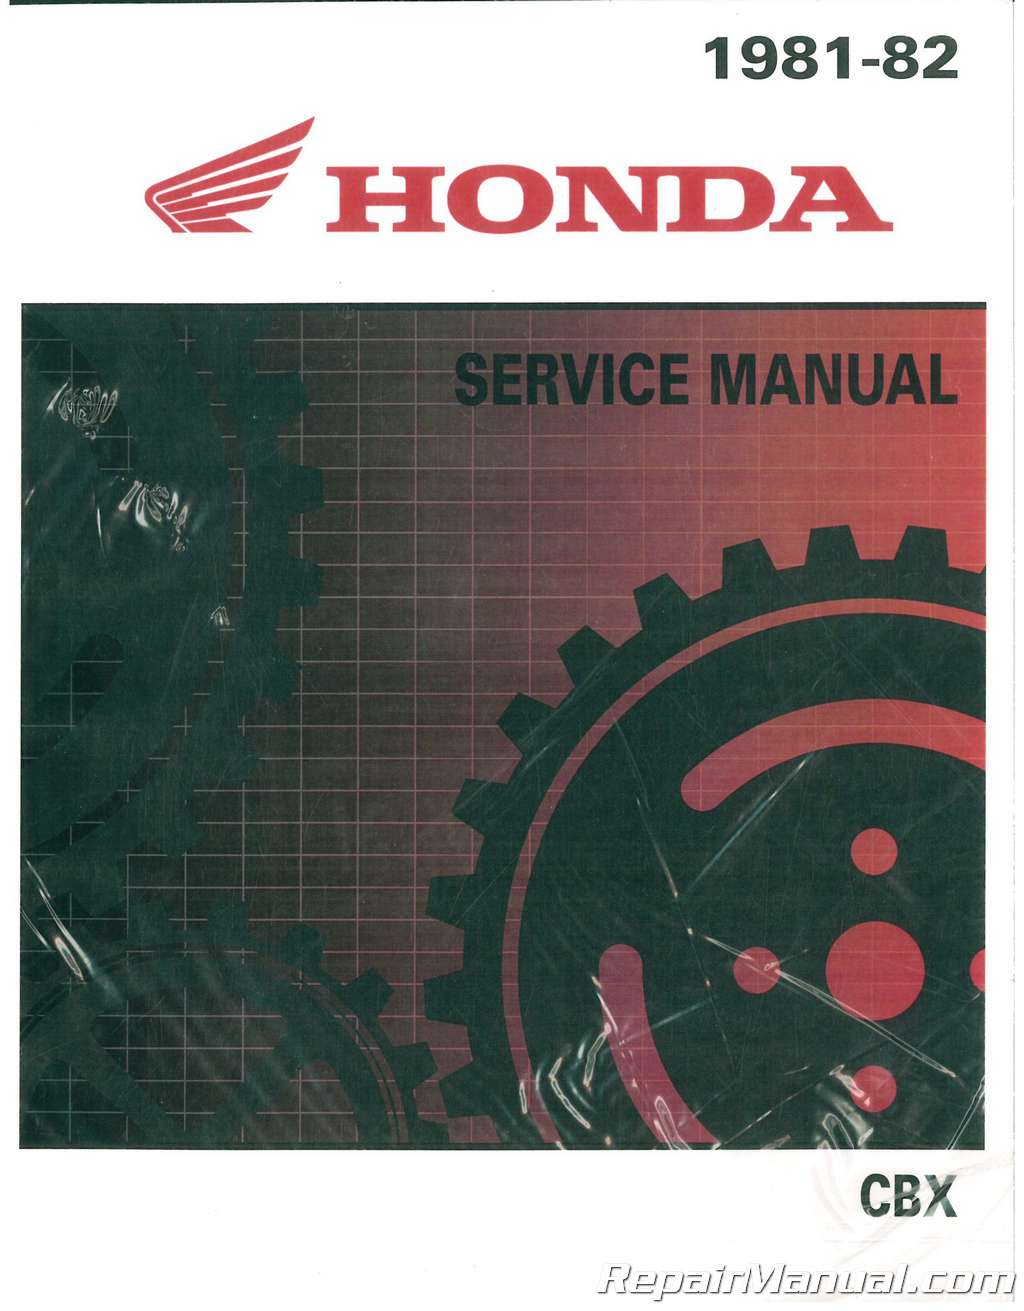 01 400ex Wiring Harness Schematics Data Diagrams Engine Diagram Honda Rancher 350 400 Carburetor Odicis